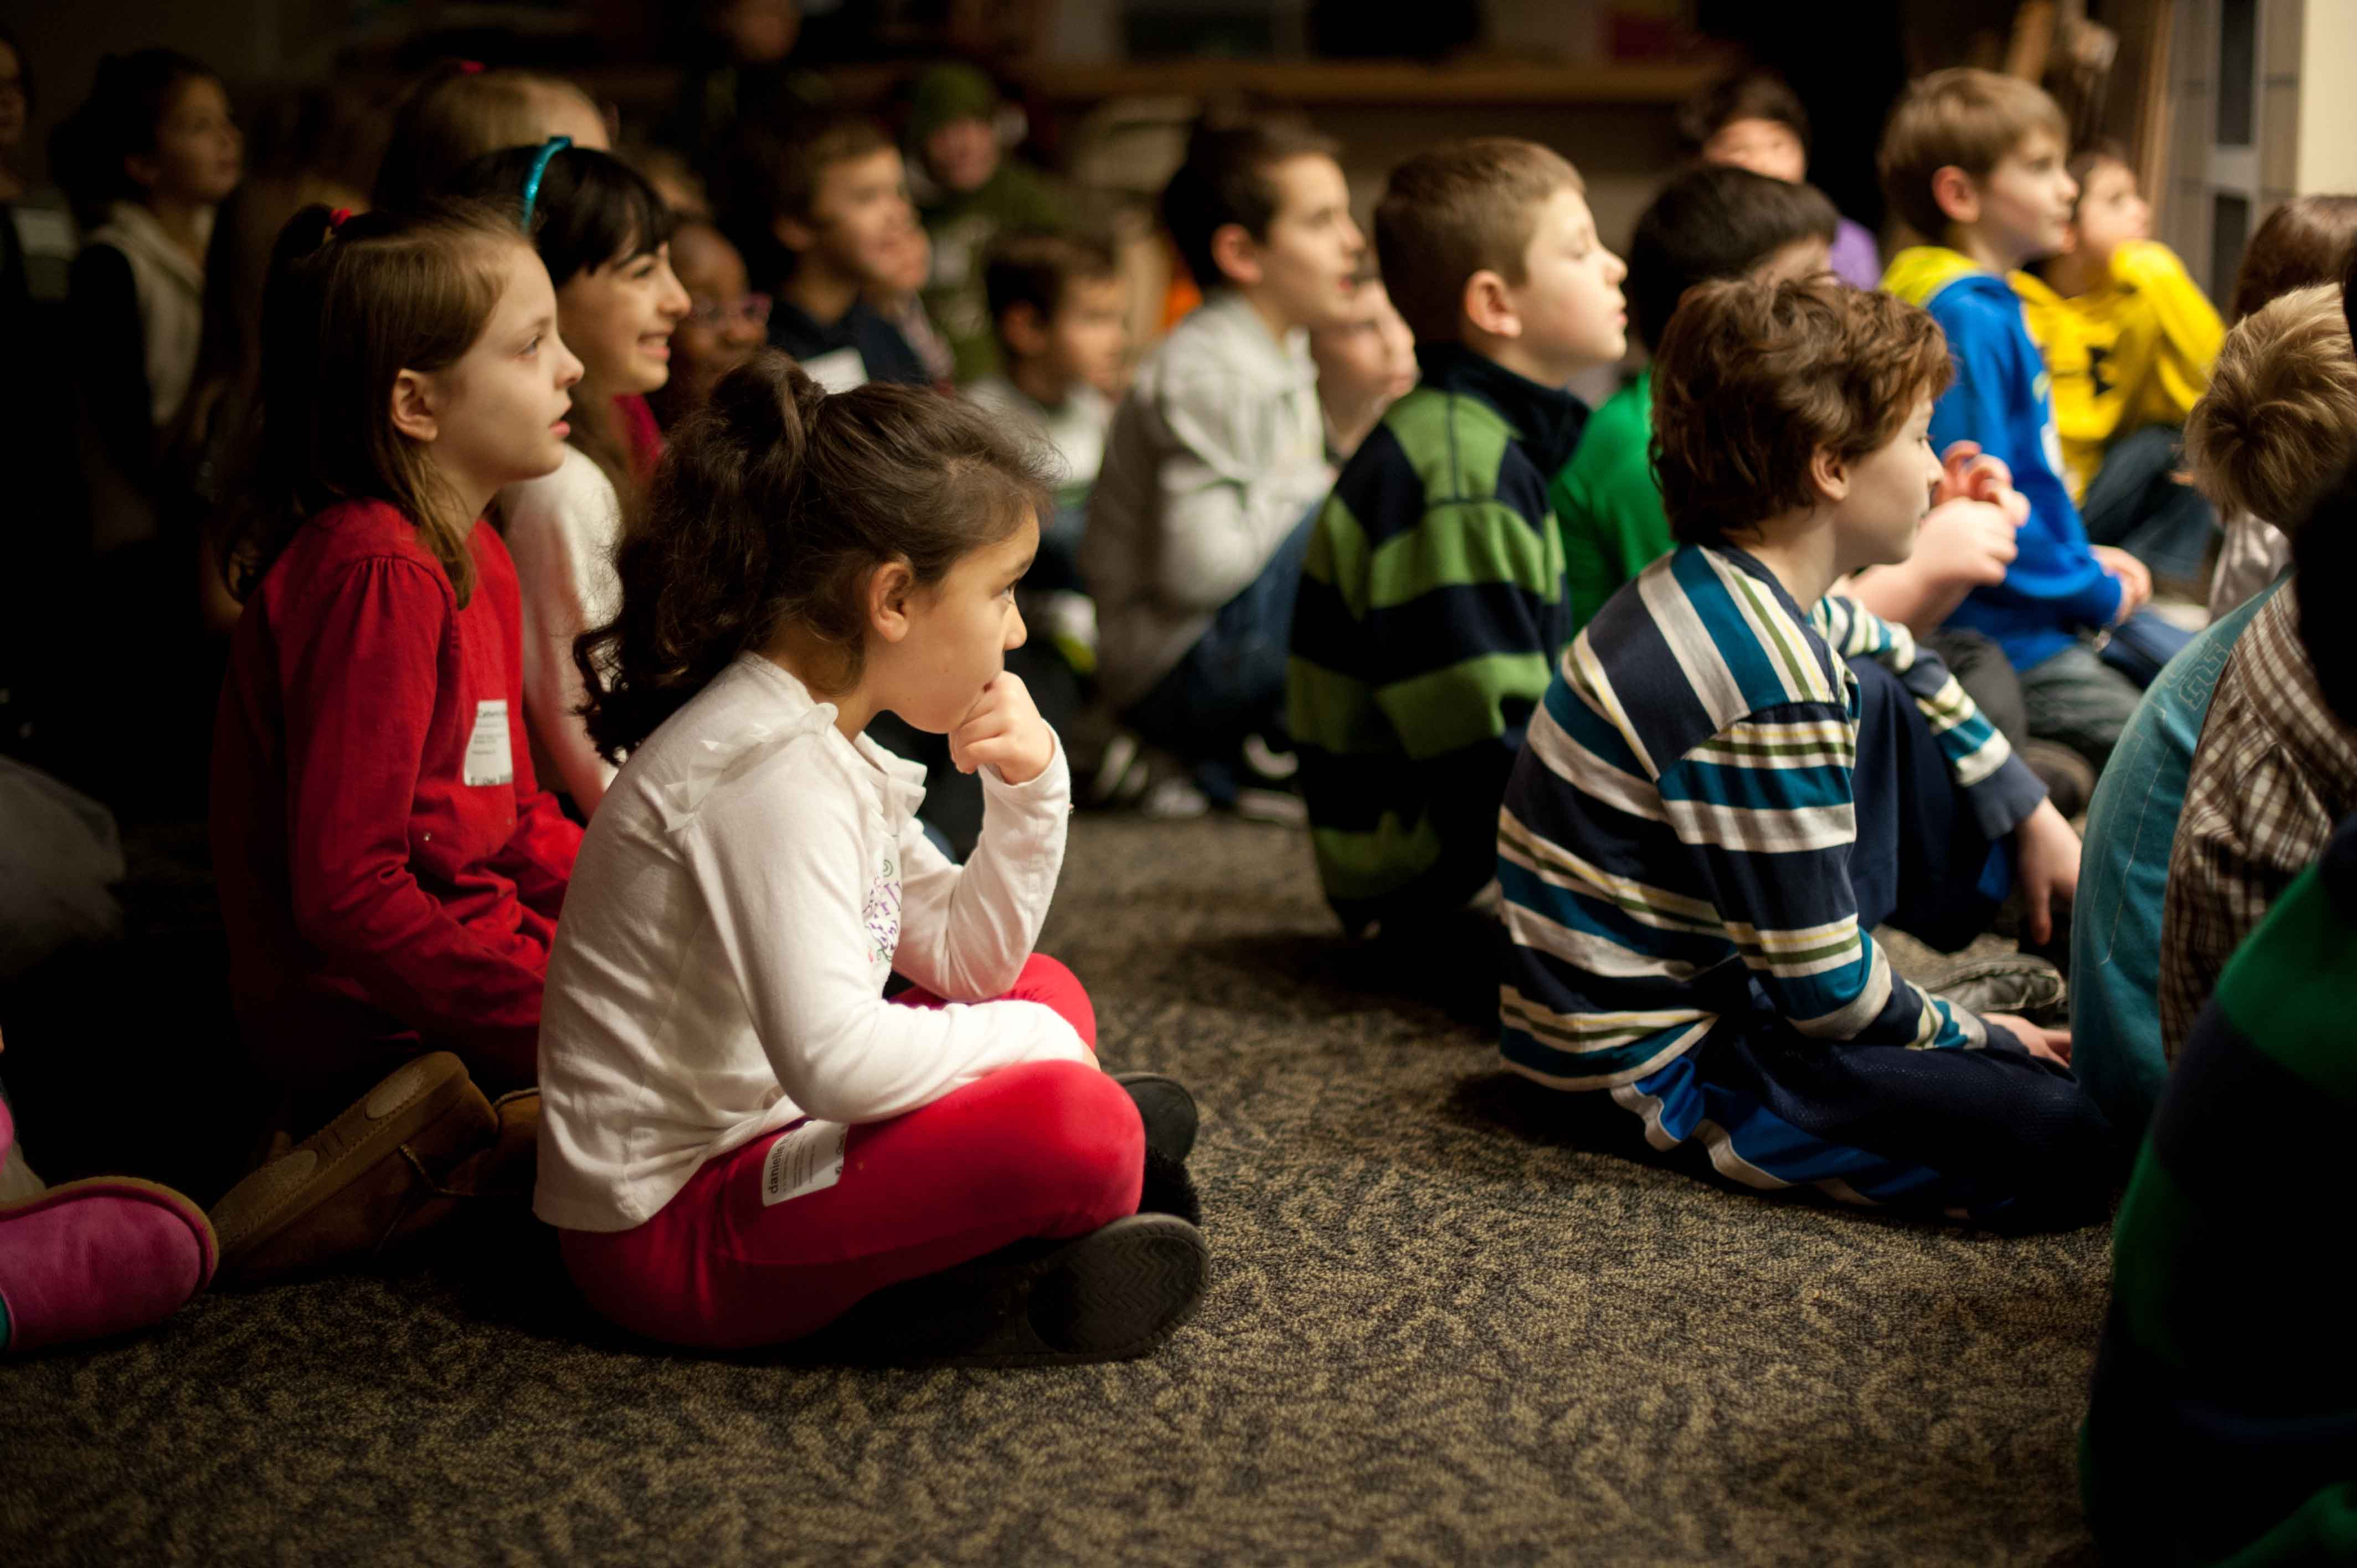 A large group of kids sitting down while learning and listening to someone talk.